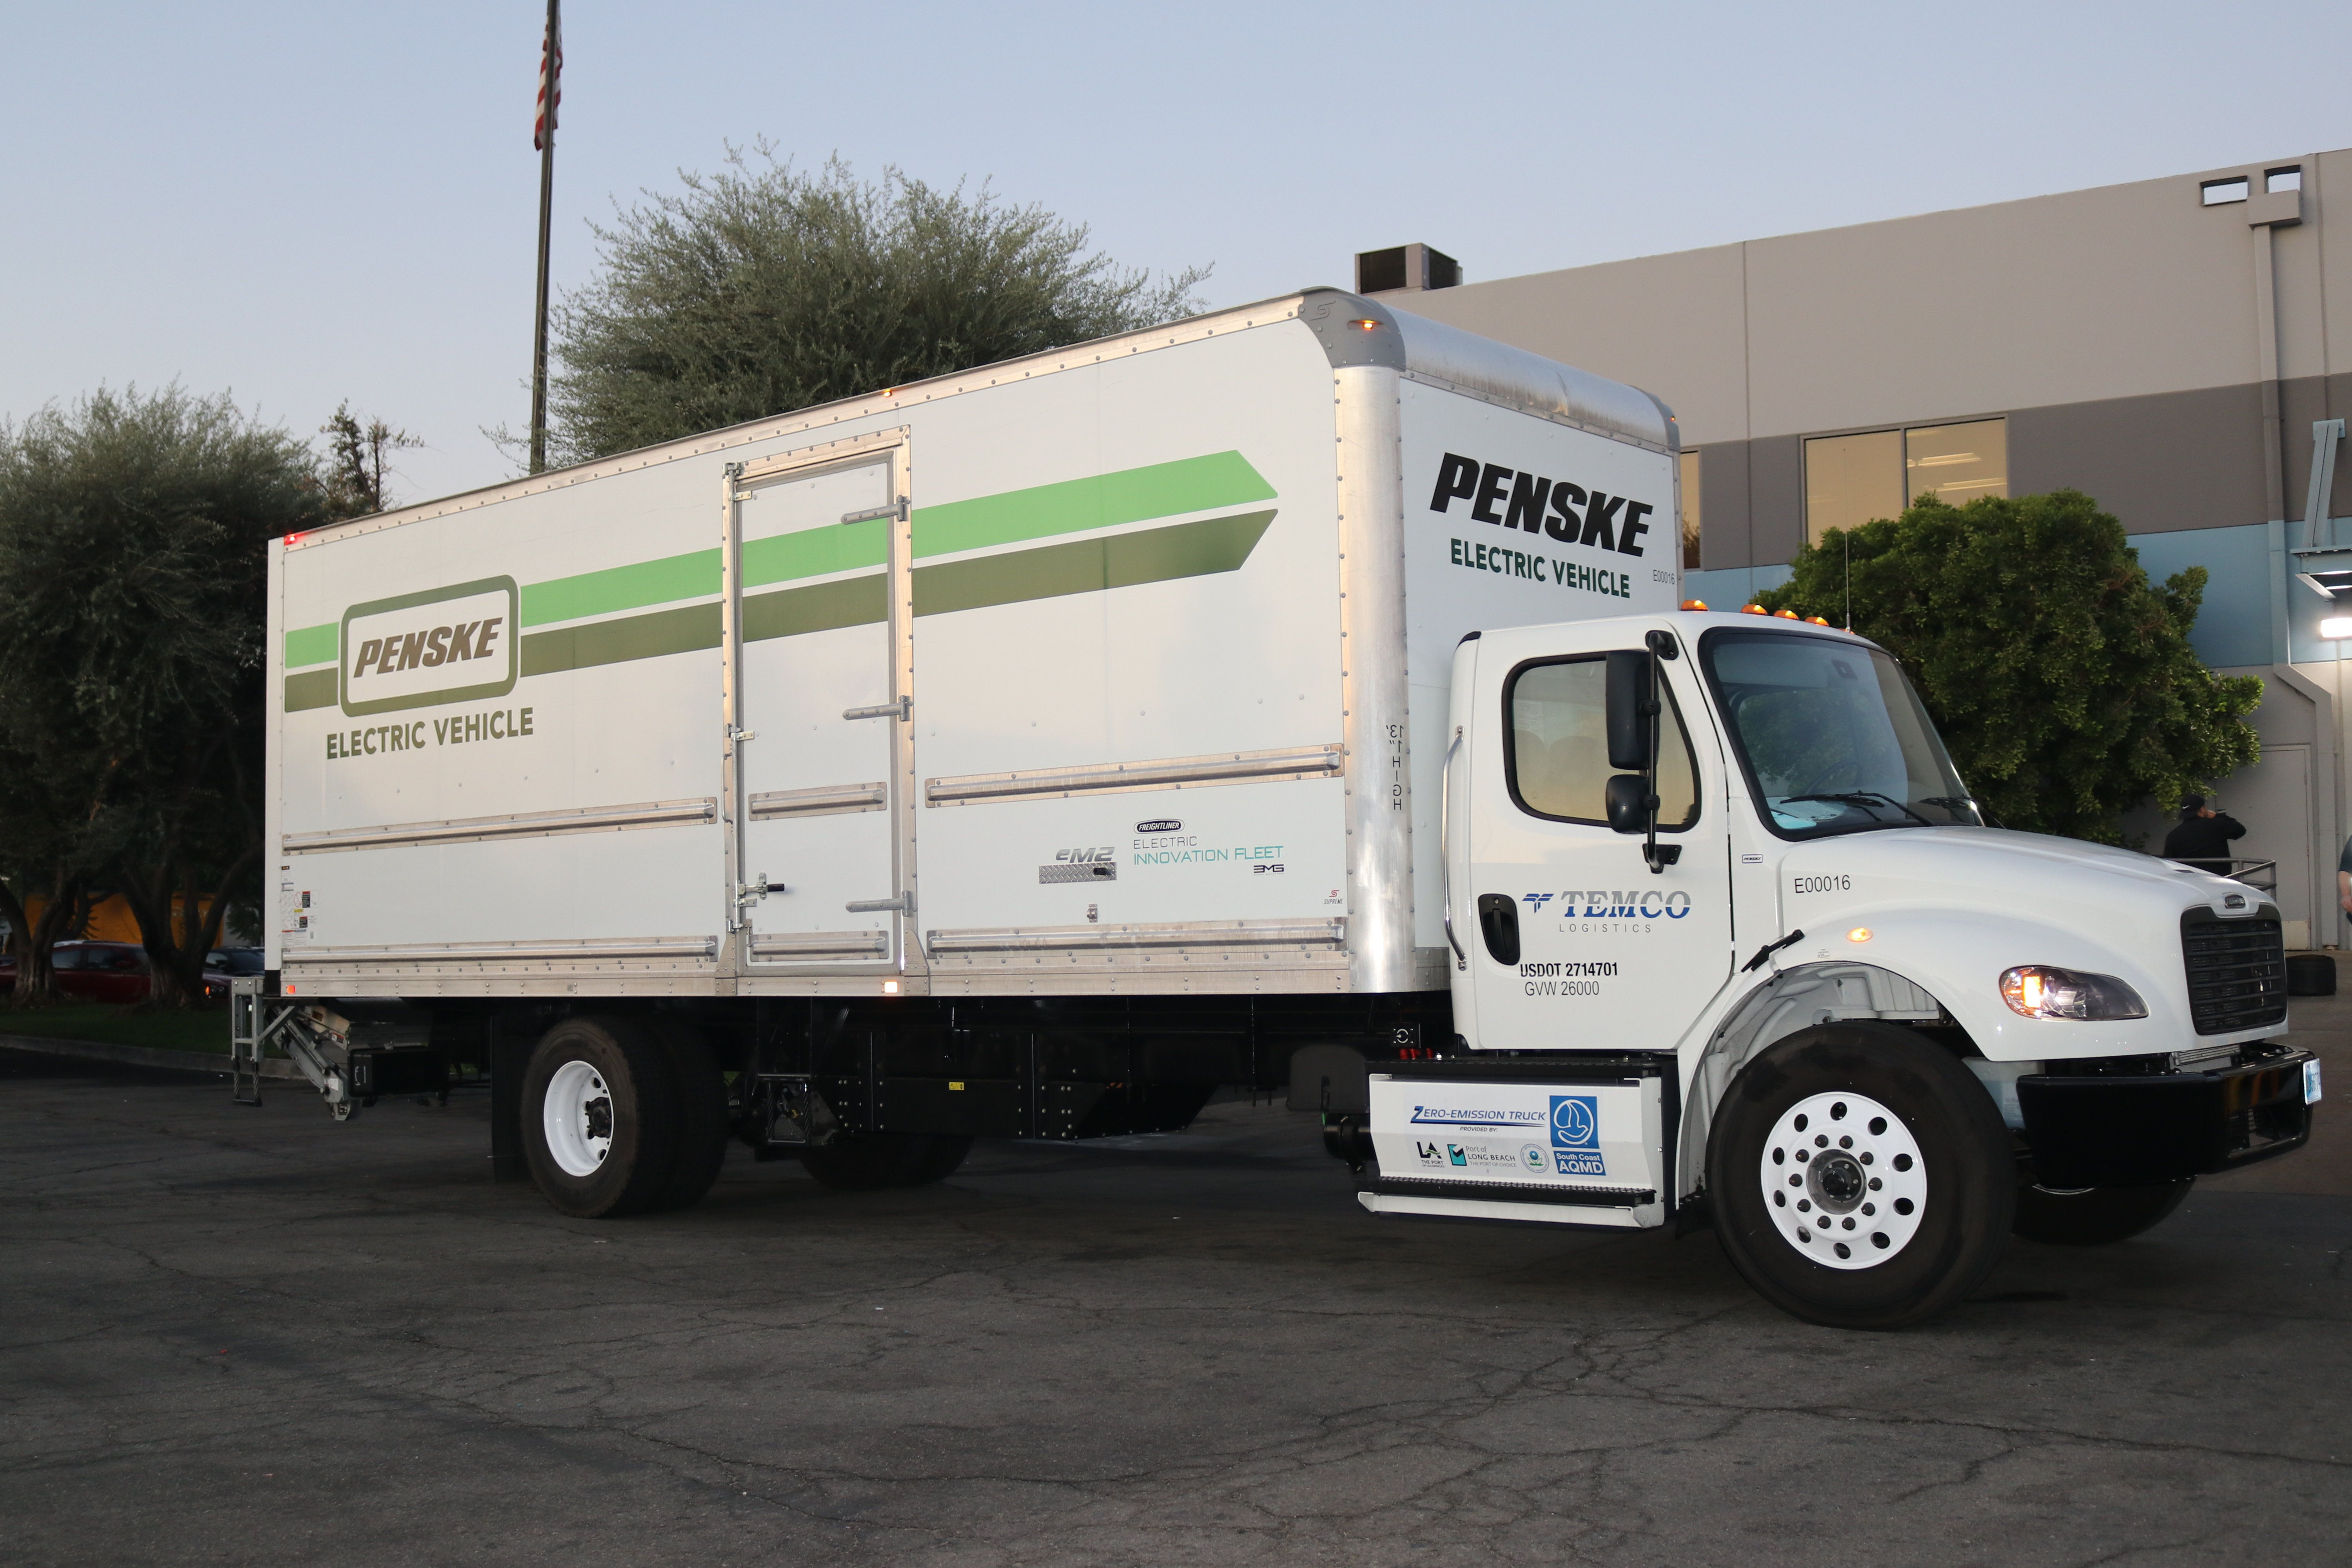 Penske Deploys Battery Electric Truck with Temco Logistics